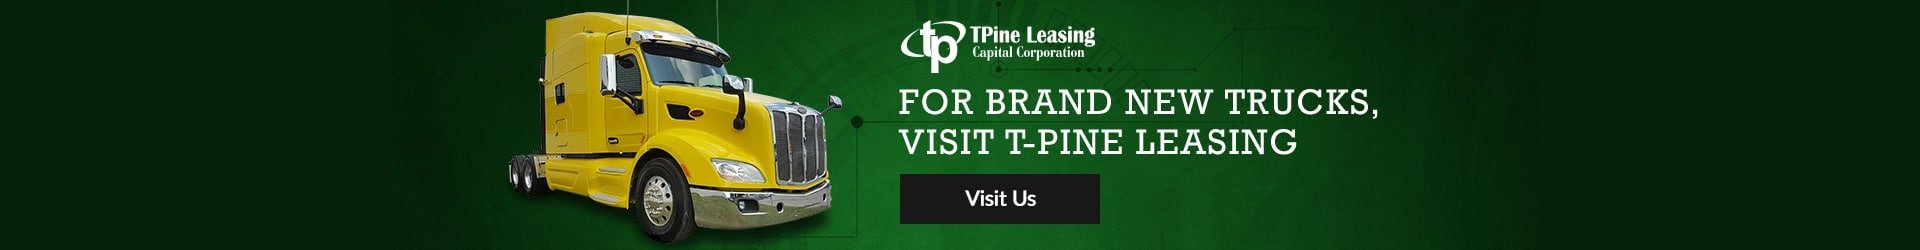 TPine Leasing